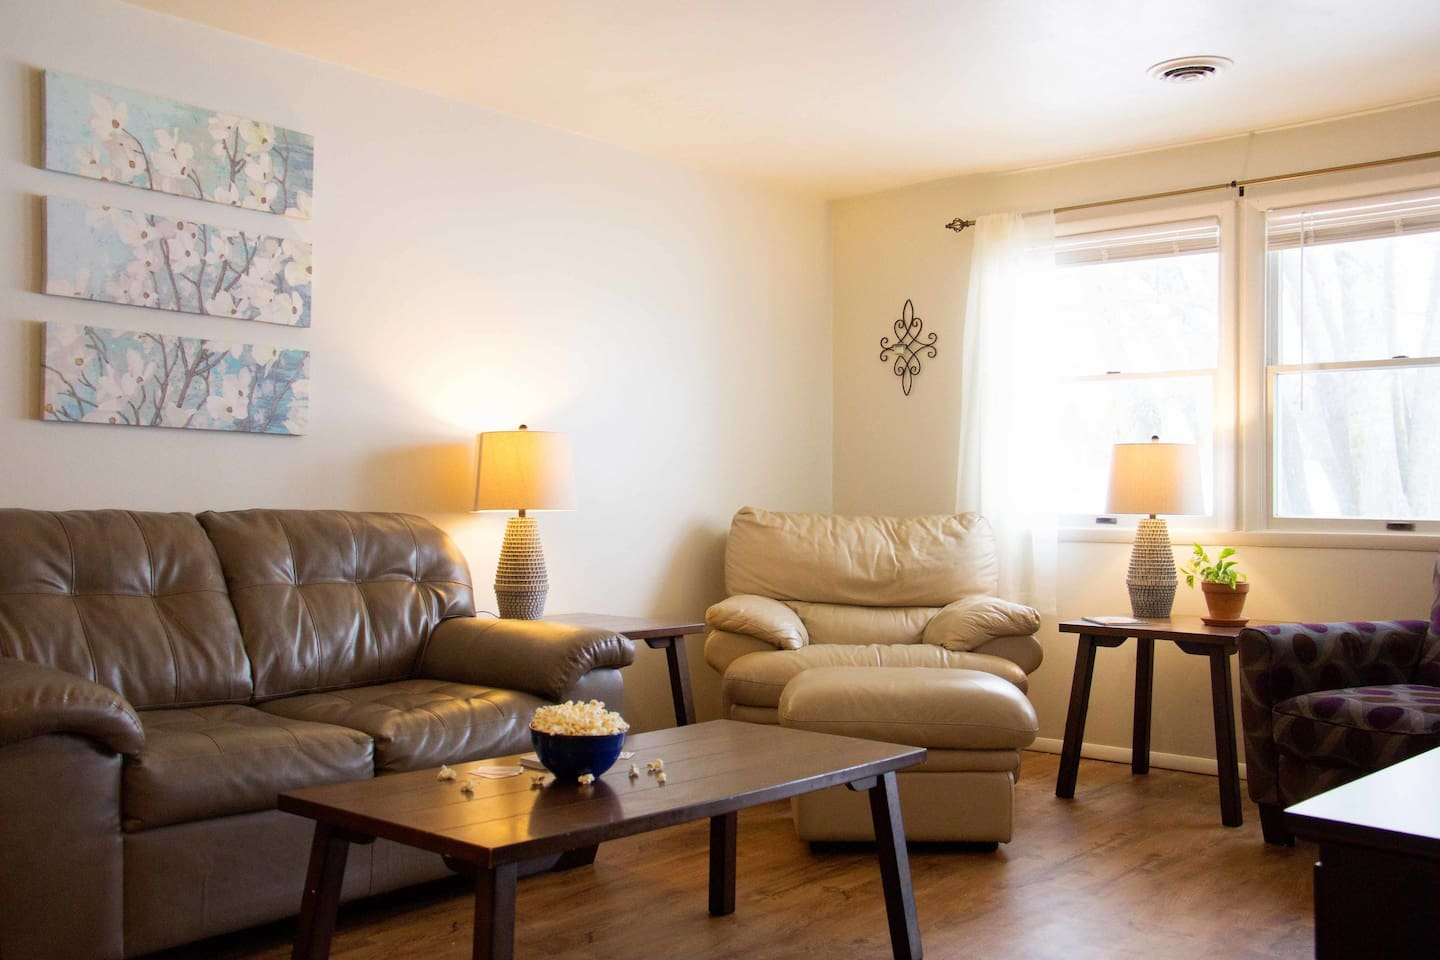 Family sized living space - Don't get too comfortable or you'll miss all the local activities and recreation